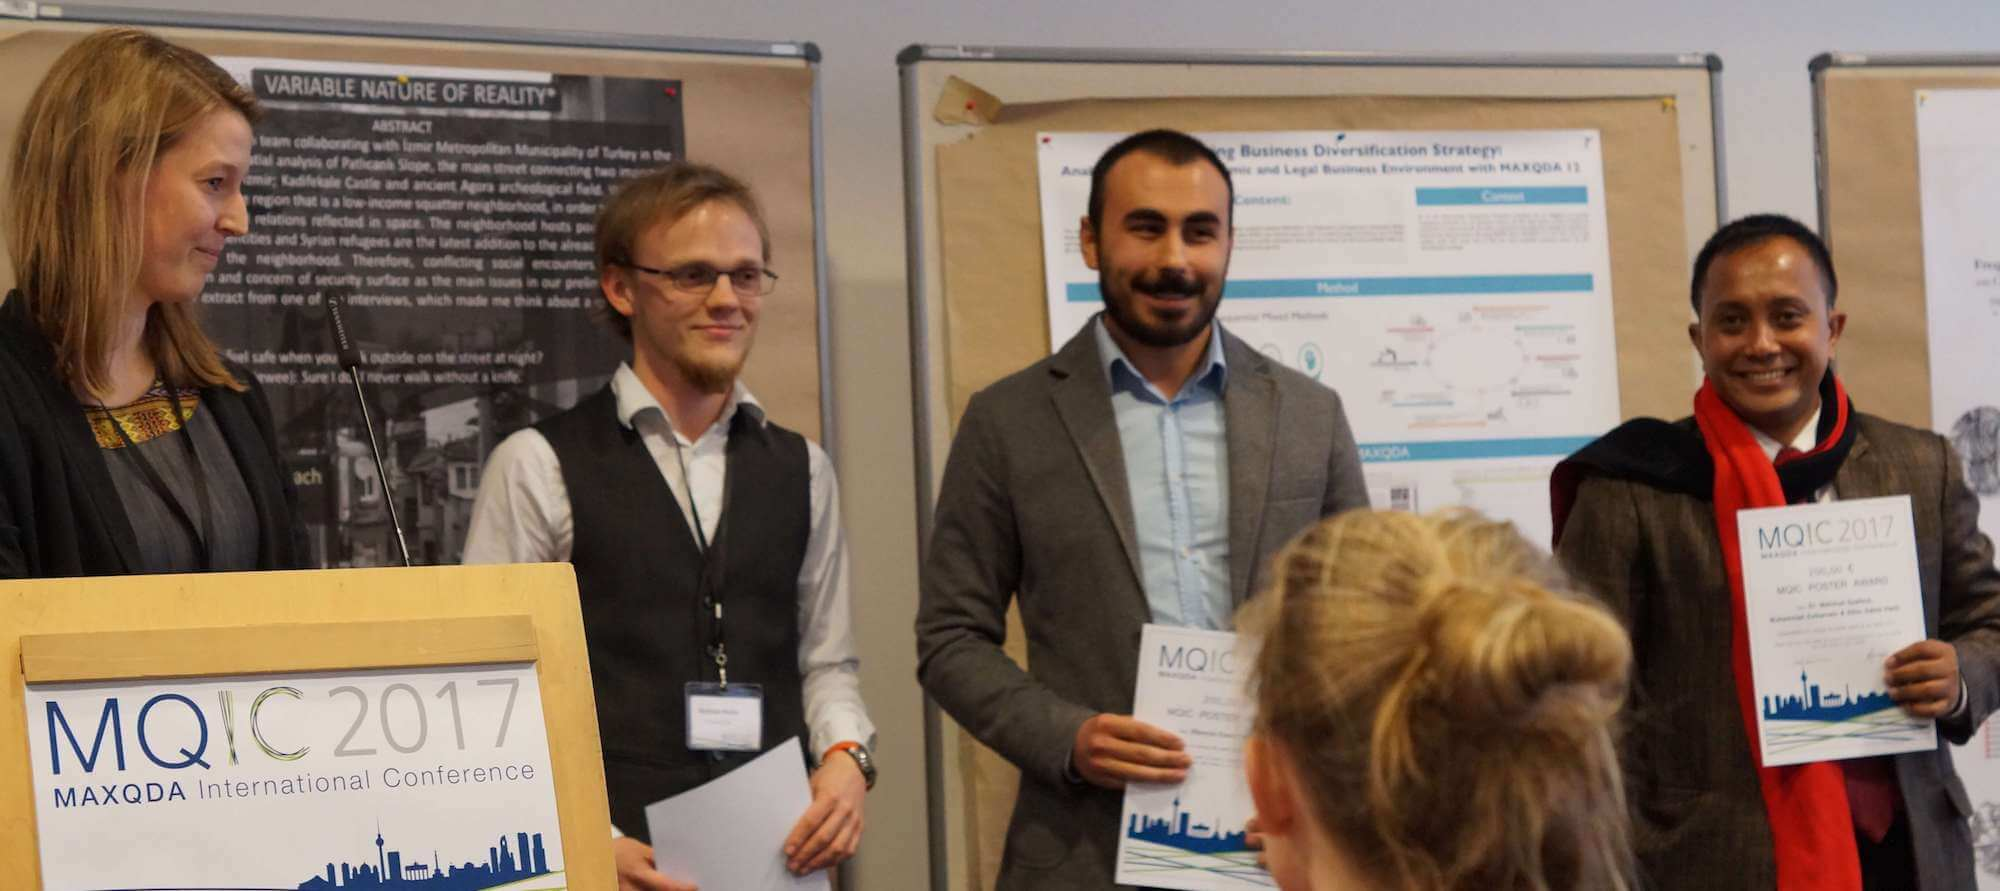 MQIC 2017 - Winners of the Poster Awards